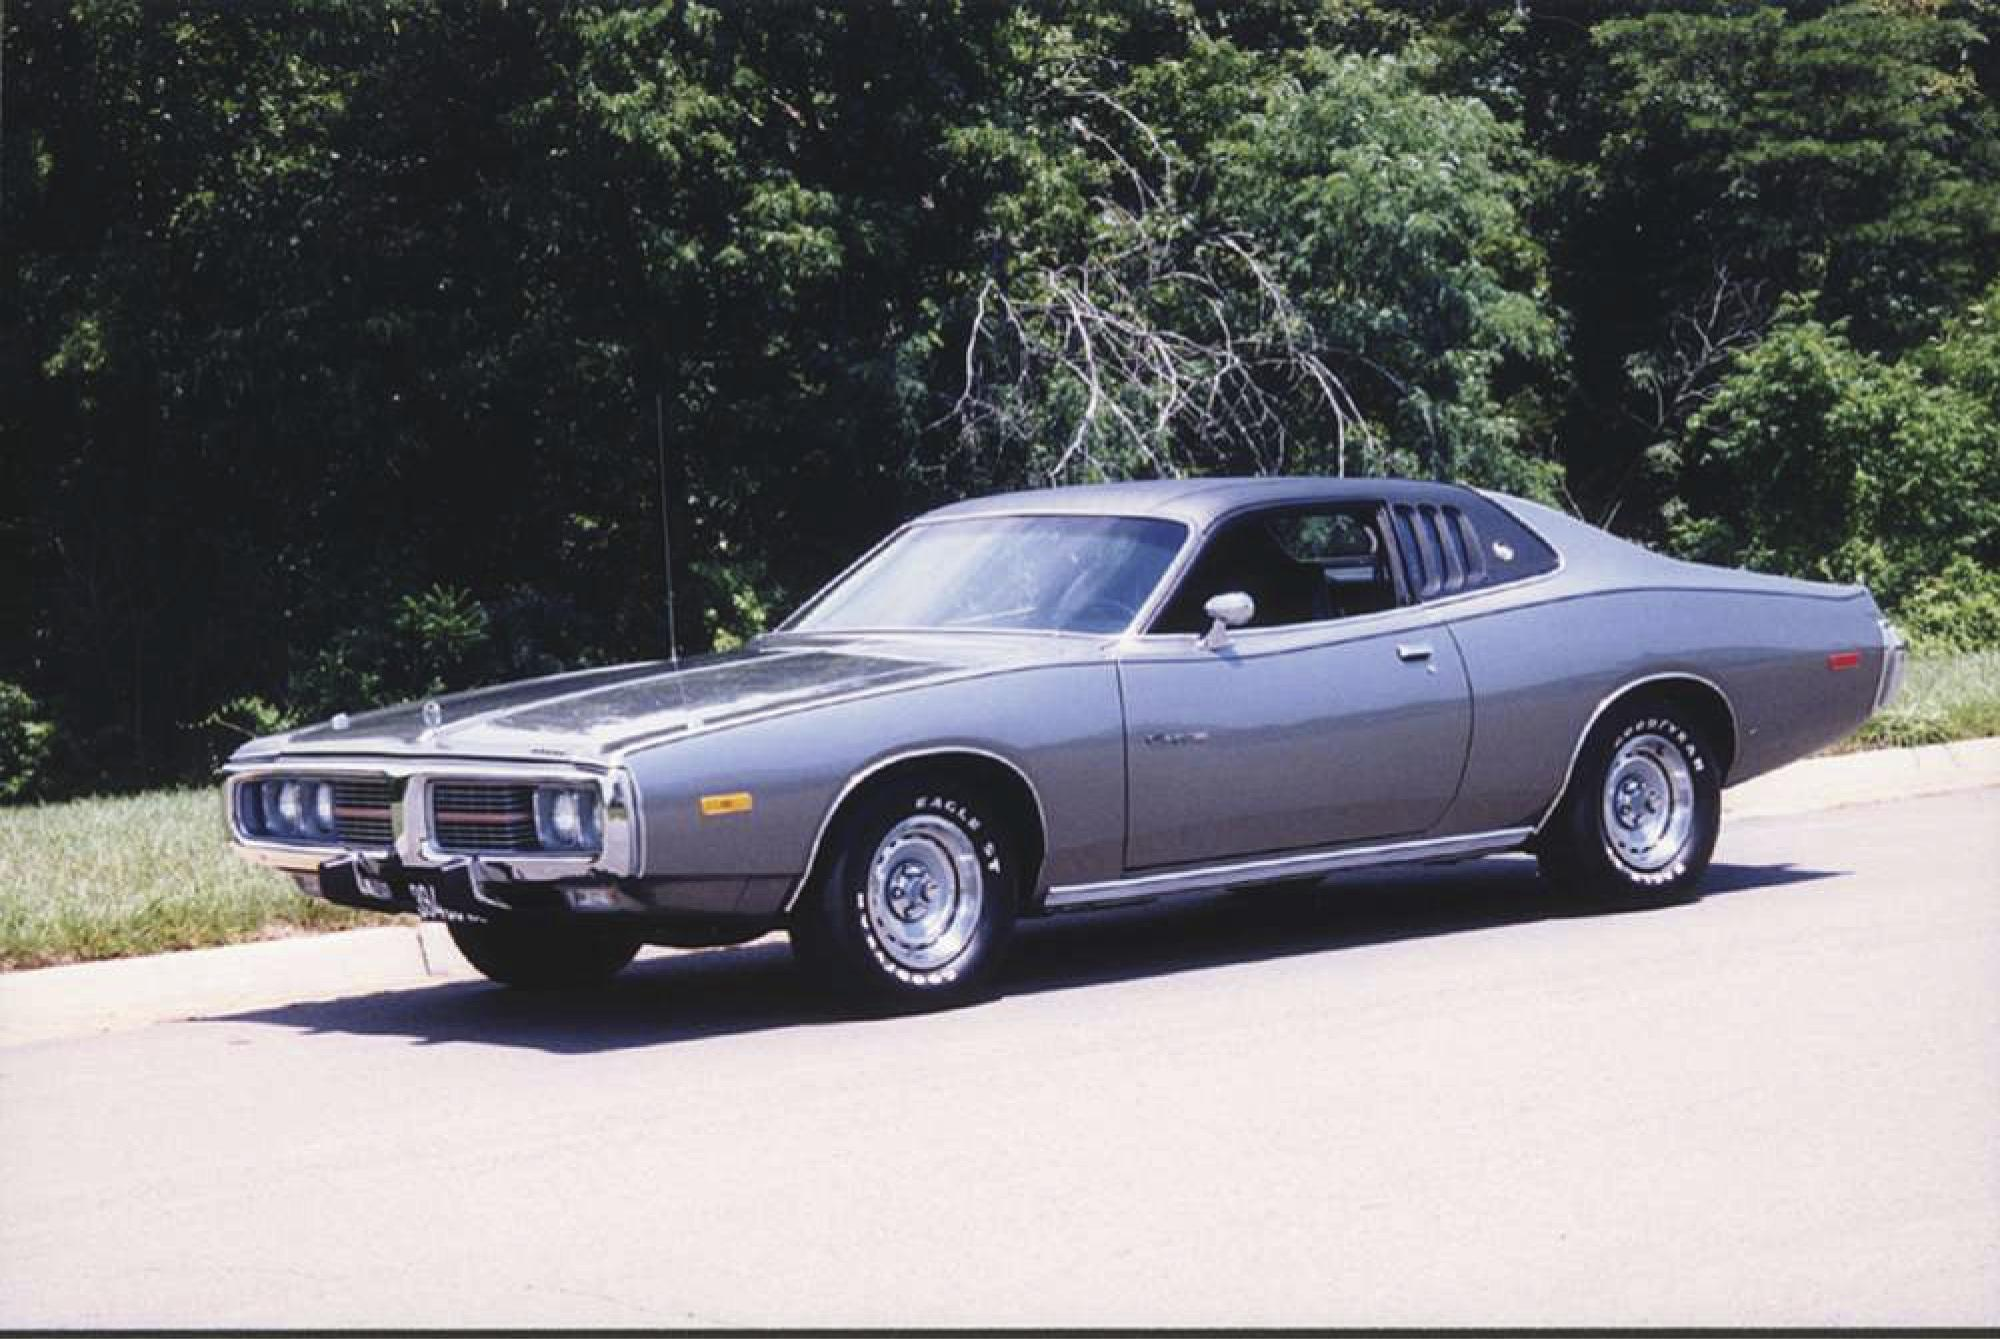 1974 Dodge Charger equipped with big V-8